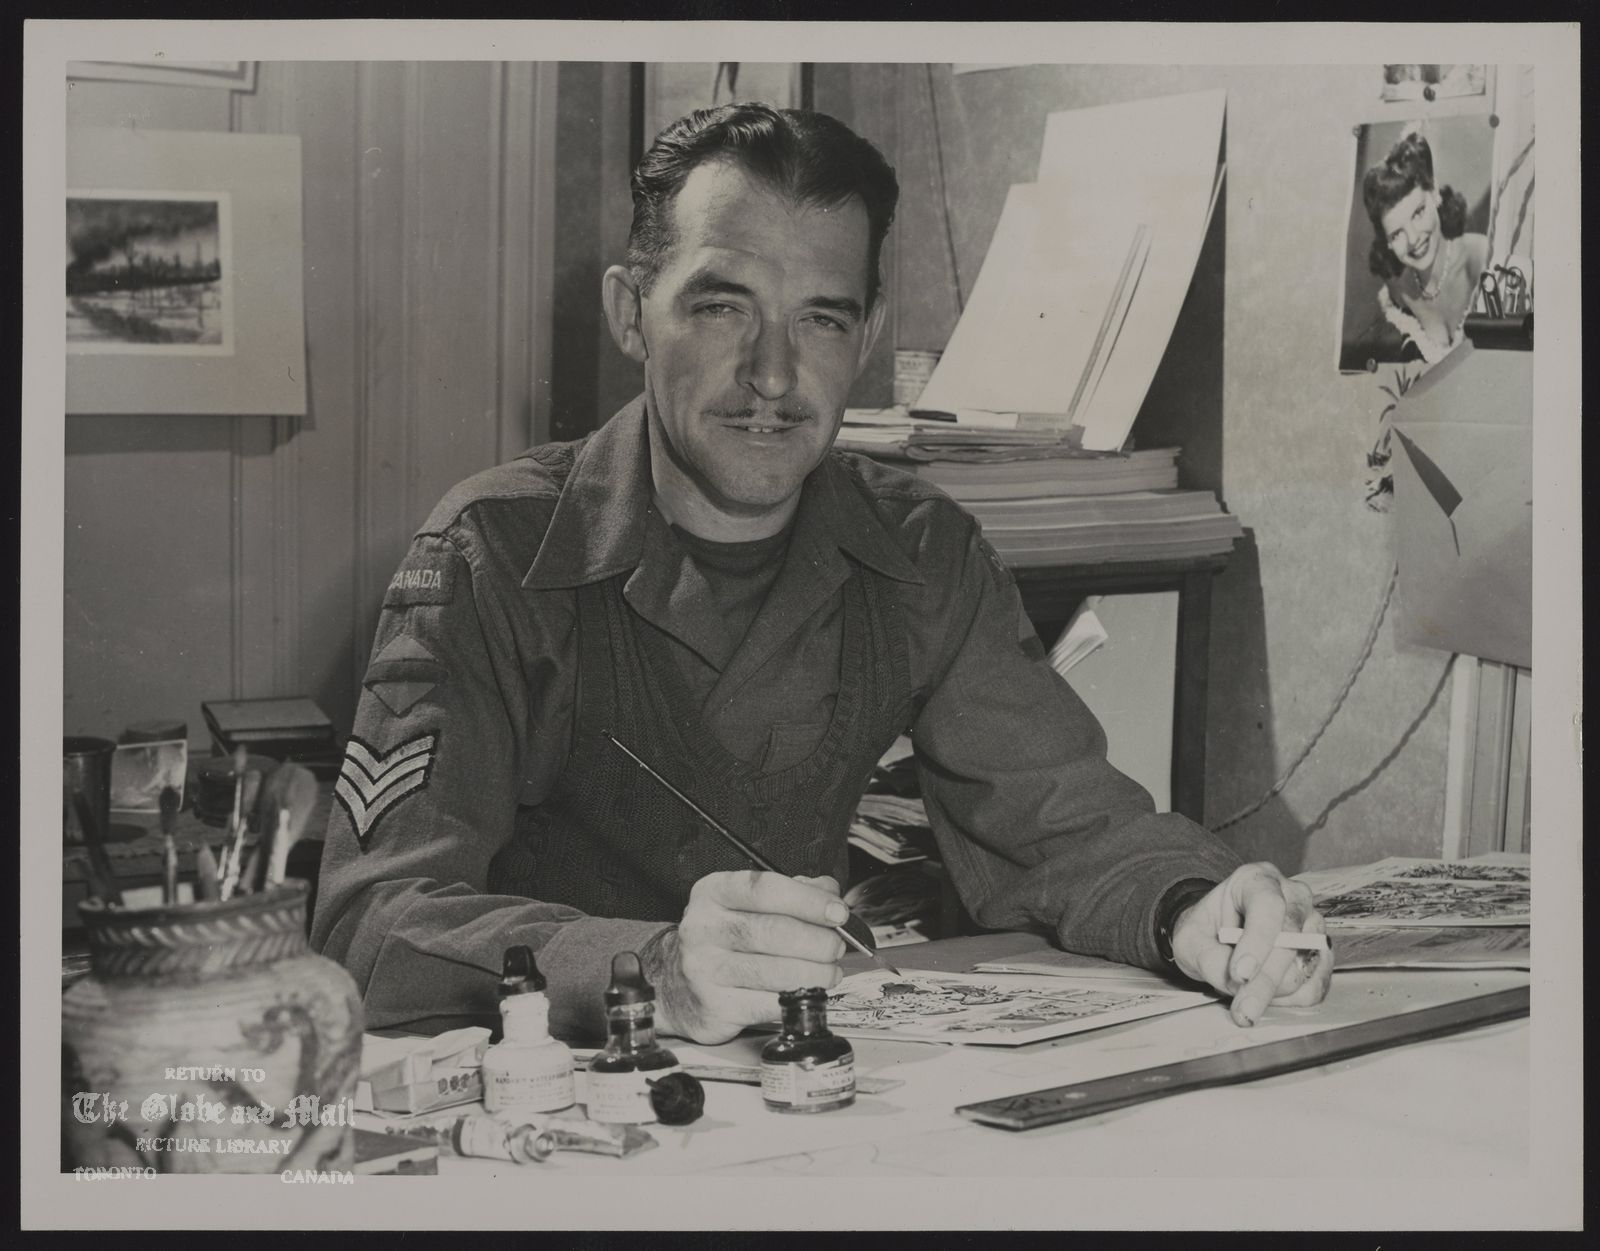 The notes transcribed from the back of this photograph are as follows: W.G. (Bing) COUGHLIN FAMOUS CANADIAN ARMY CARTOONIST DRAWS ANOTHER GEM Sgt. W.G.